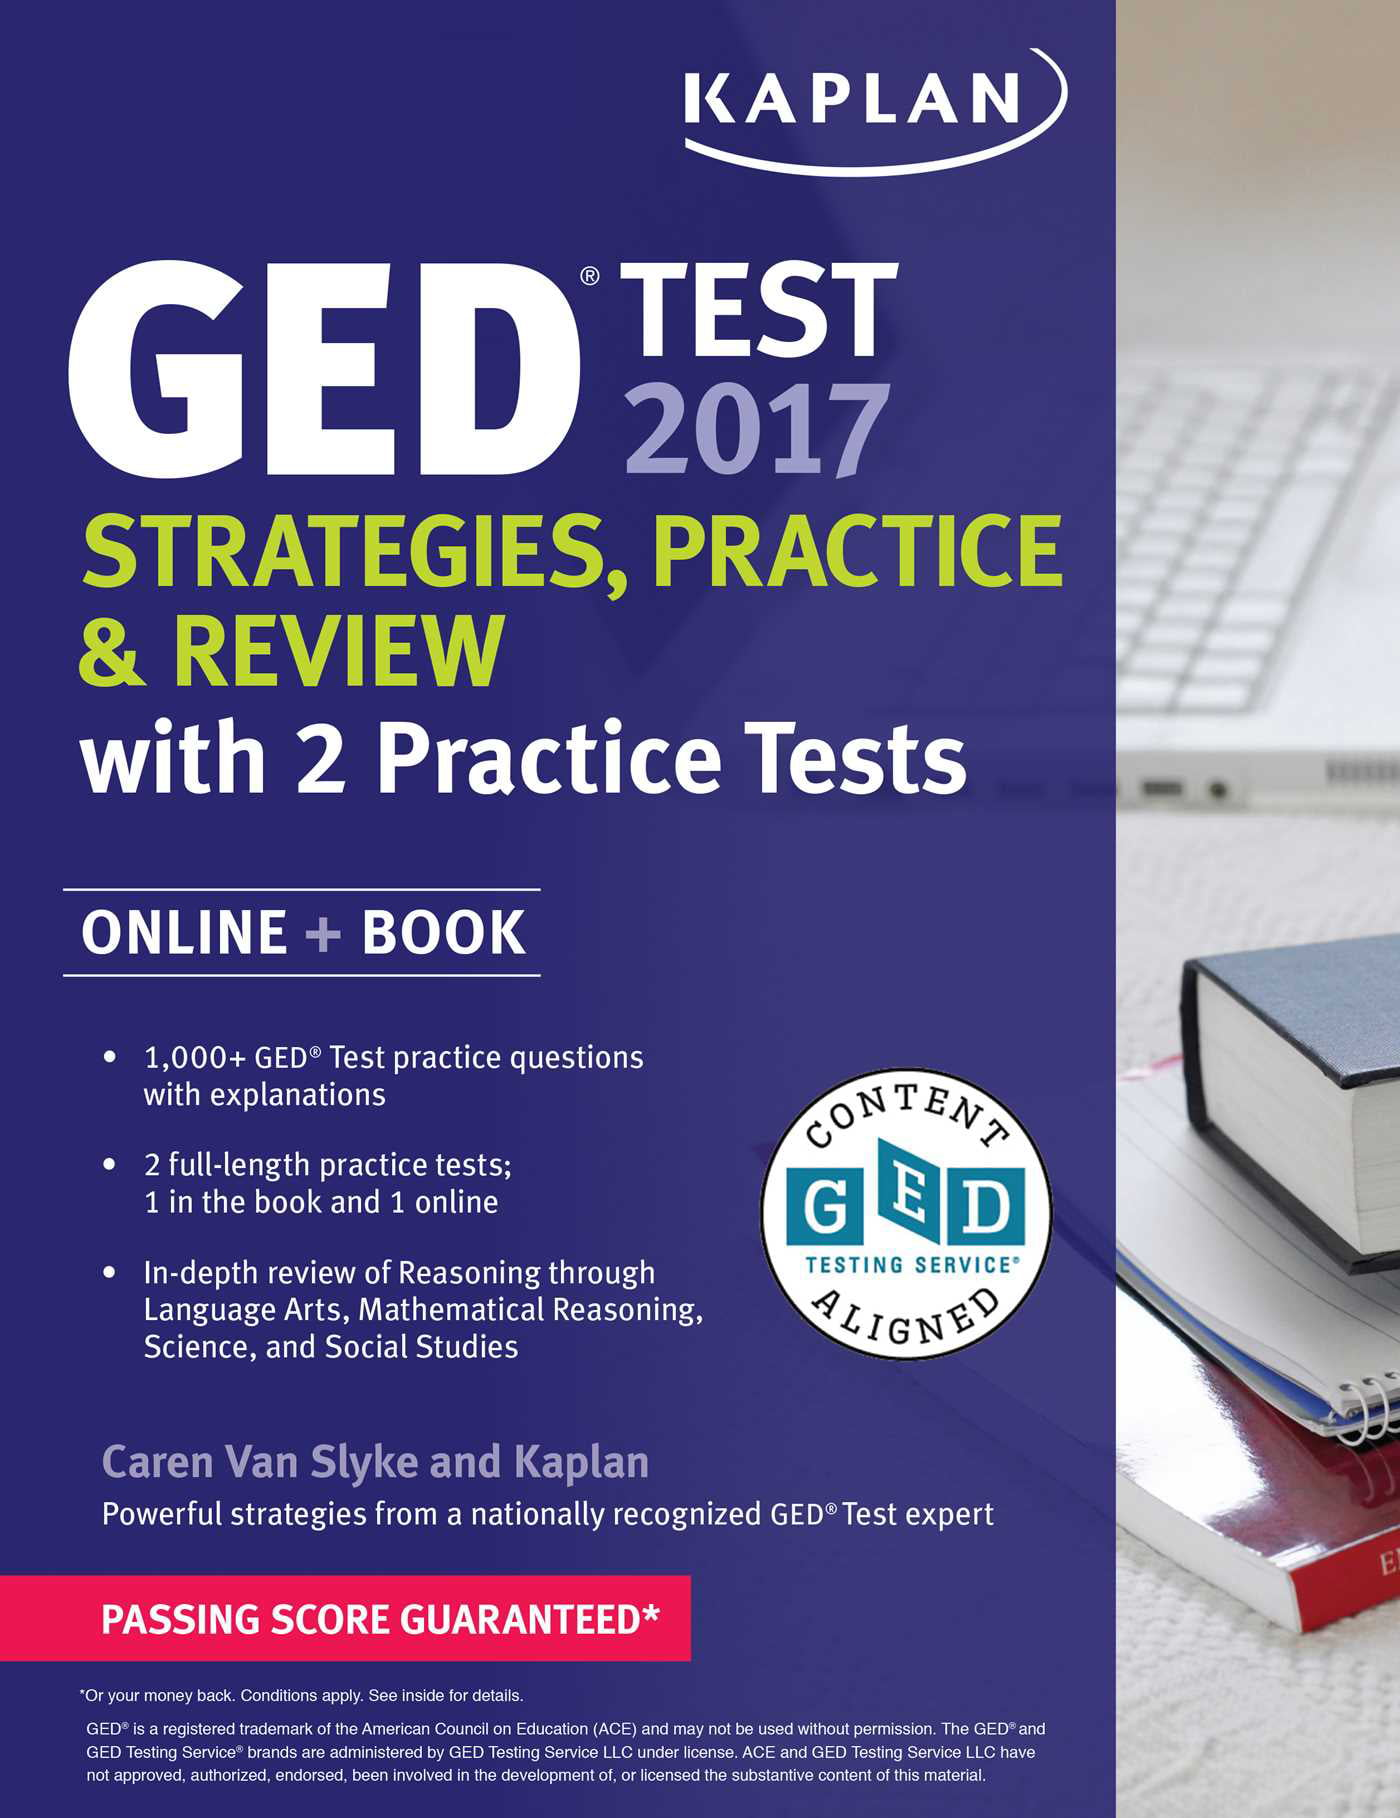 GED Test 2017 Strategies, Practice & Review with 2 Practice Tests : Online  + Book - Walmart.com